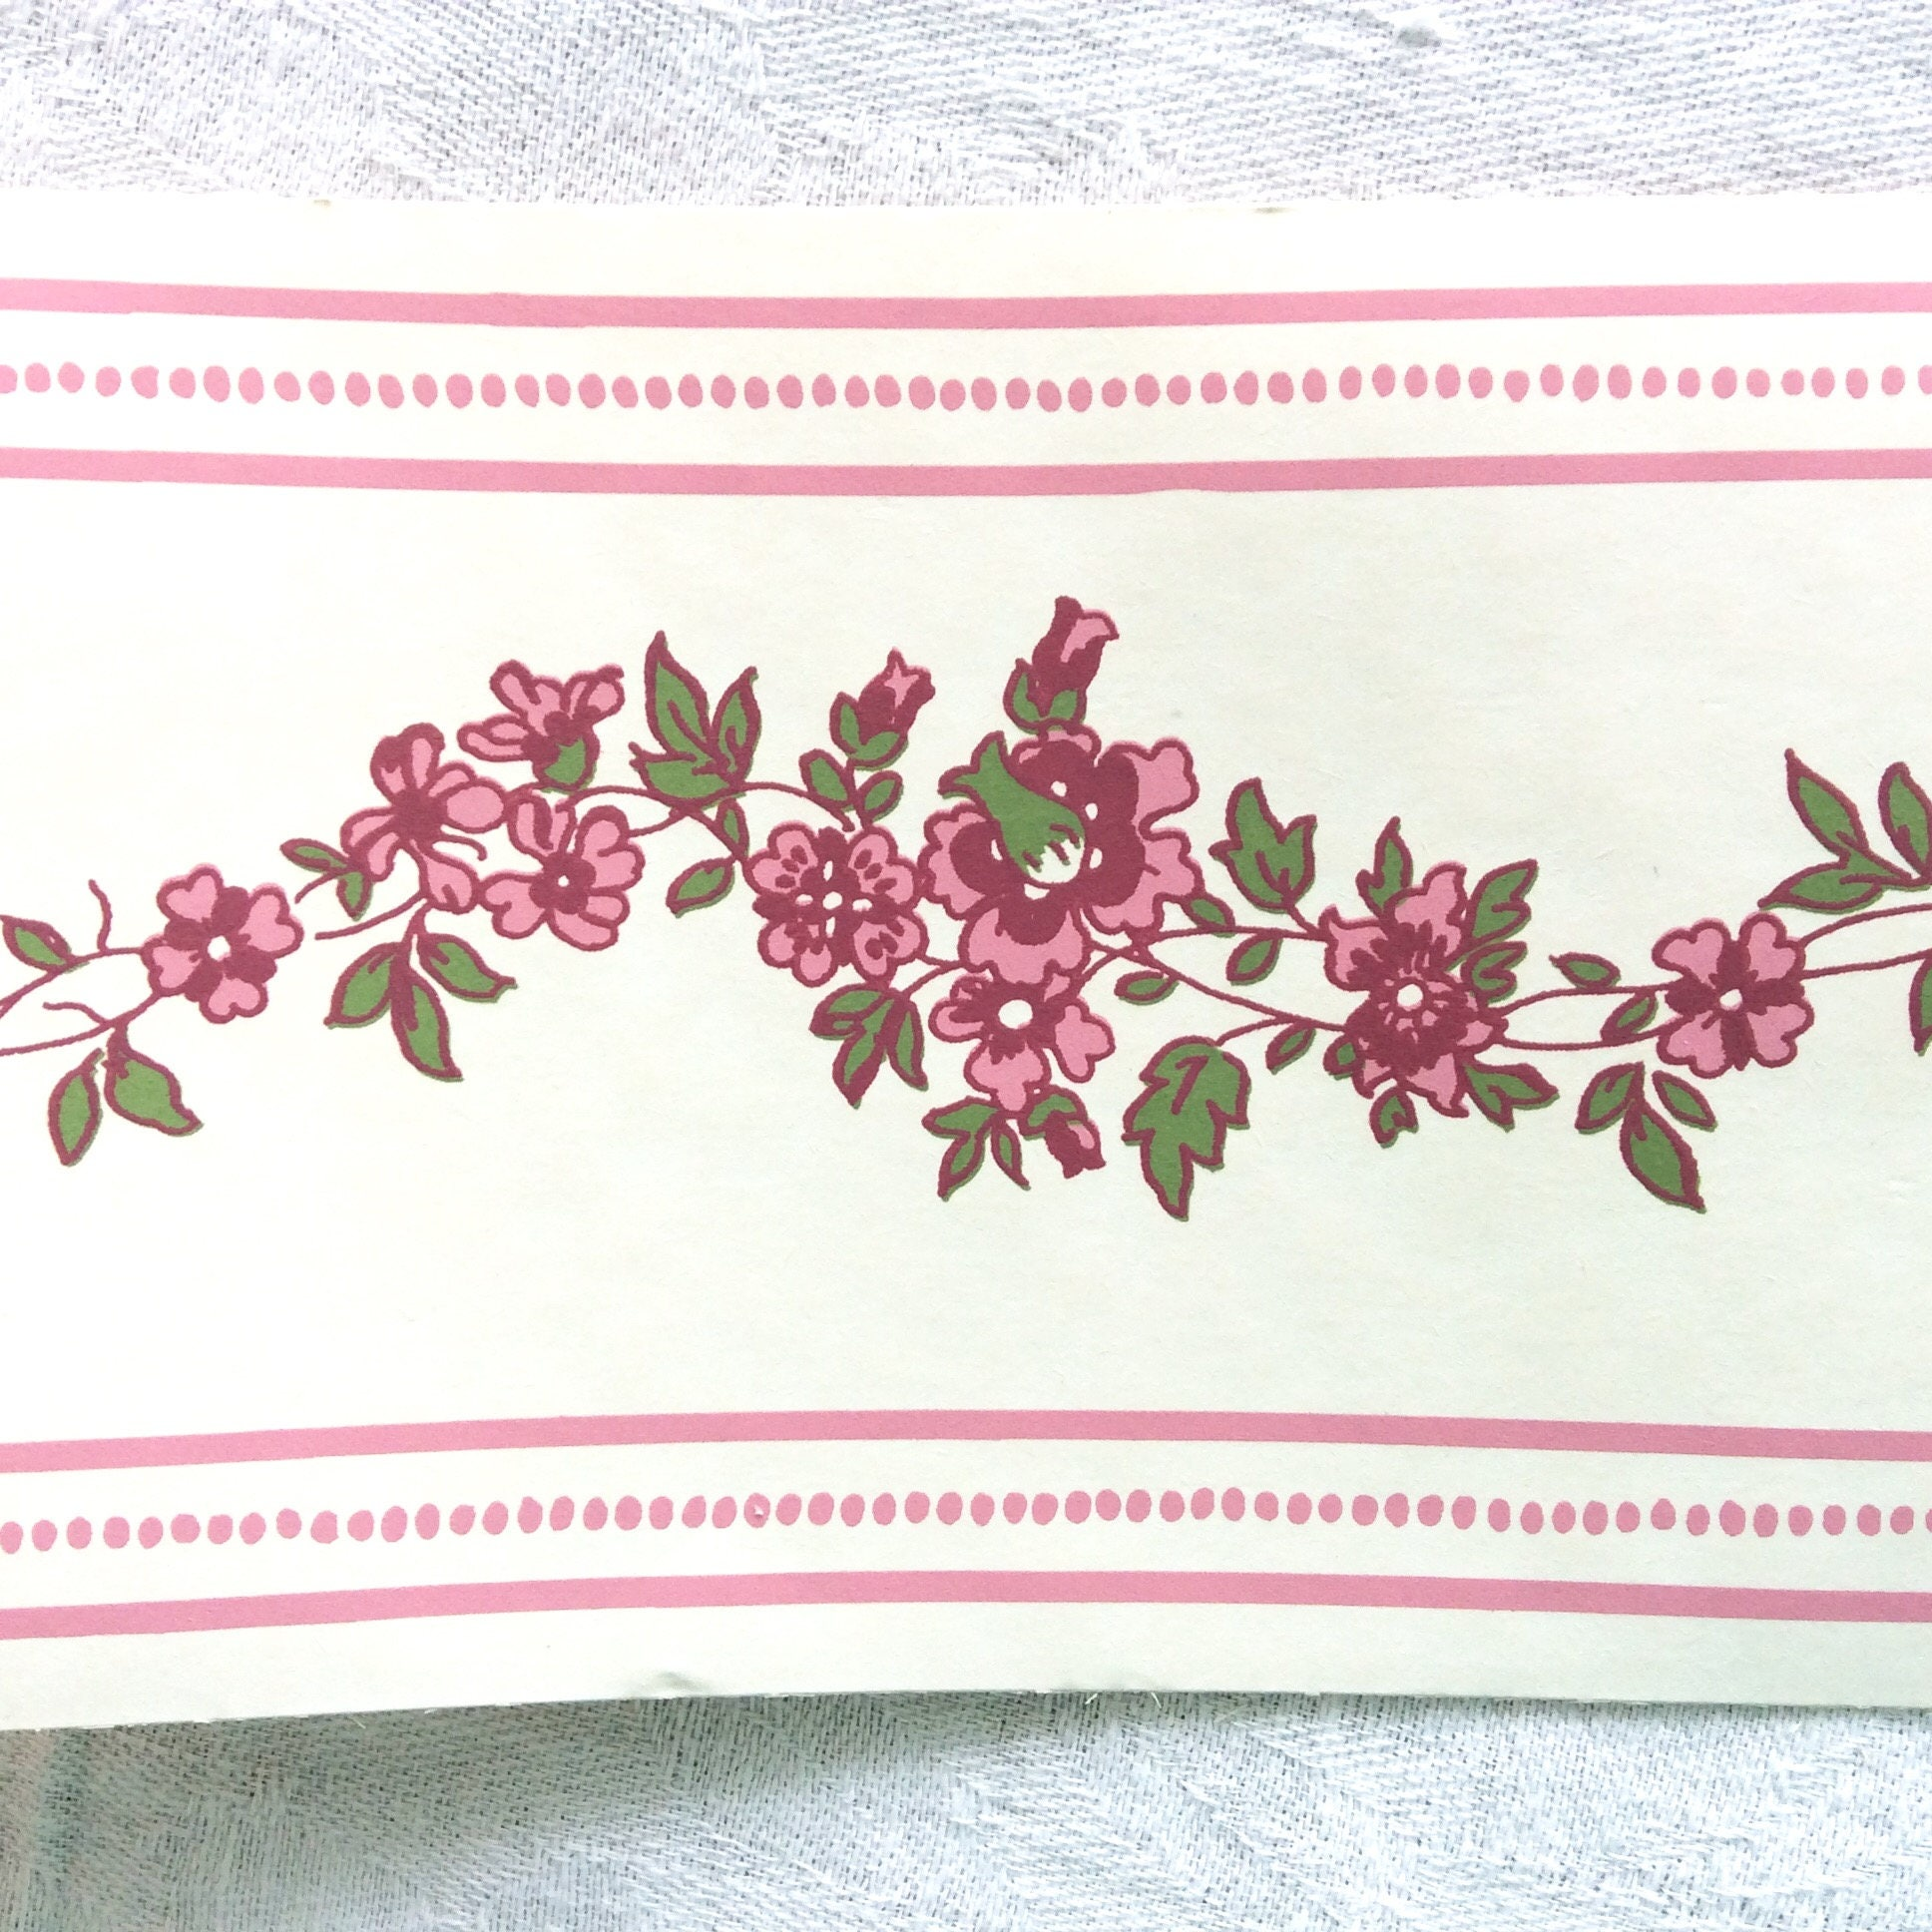 Laura Ashley Wallpaper Border 3 Rolls Pink Flowers Made In Etsy